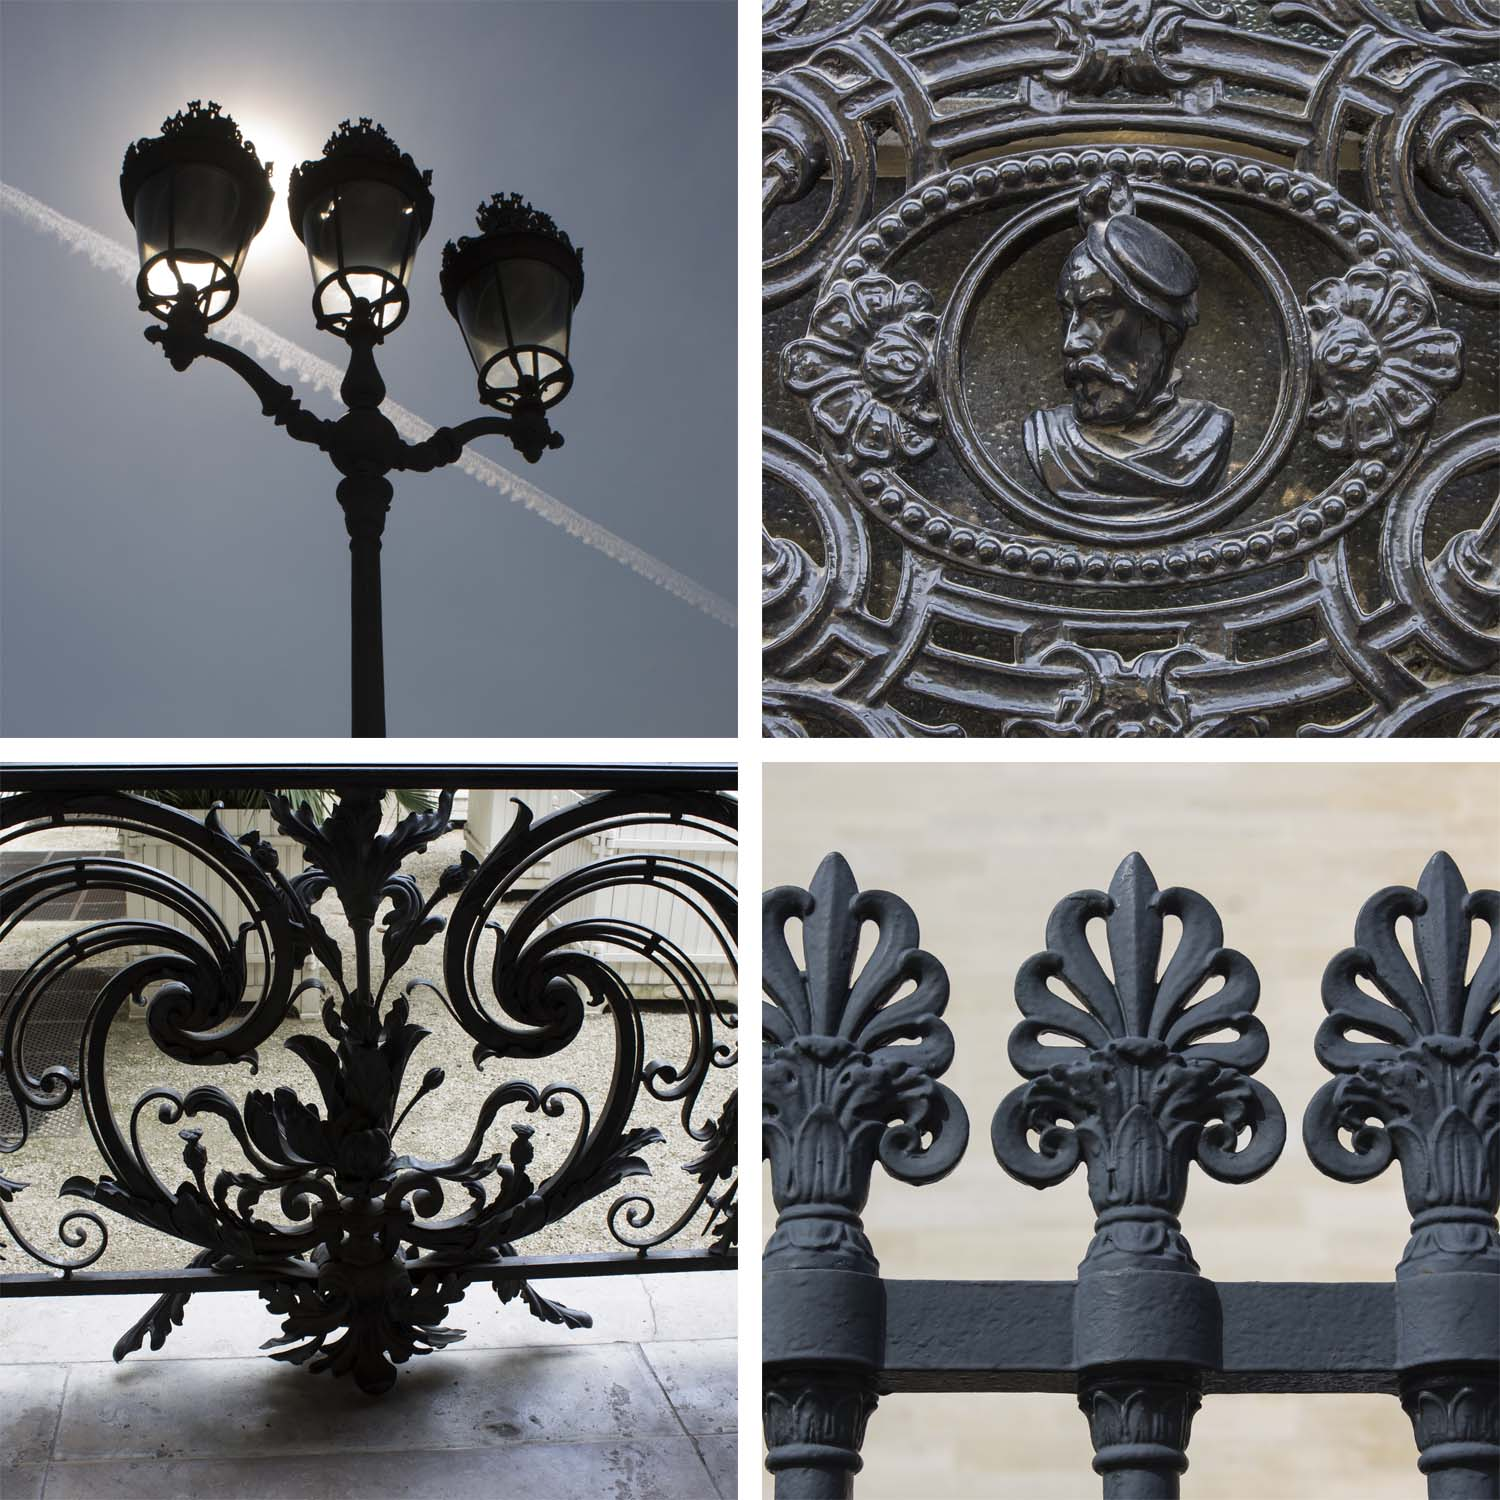 A little sample of Paris' beautiful ironwork design details.